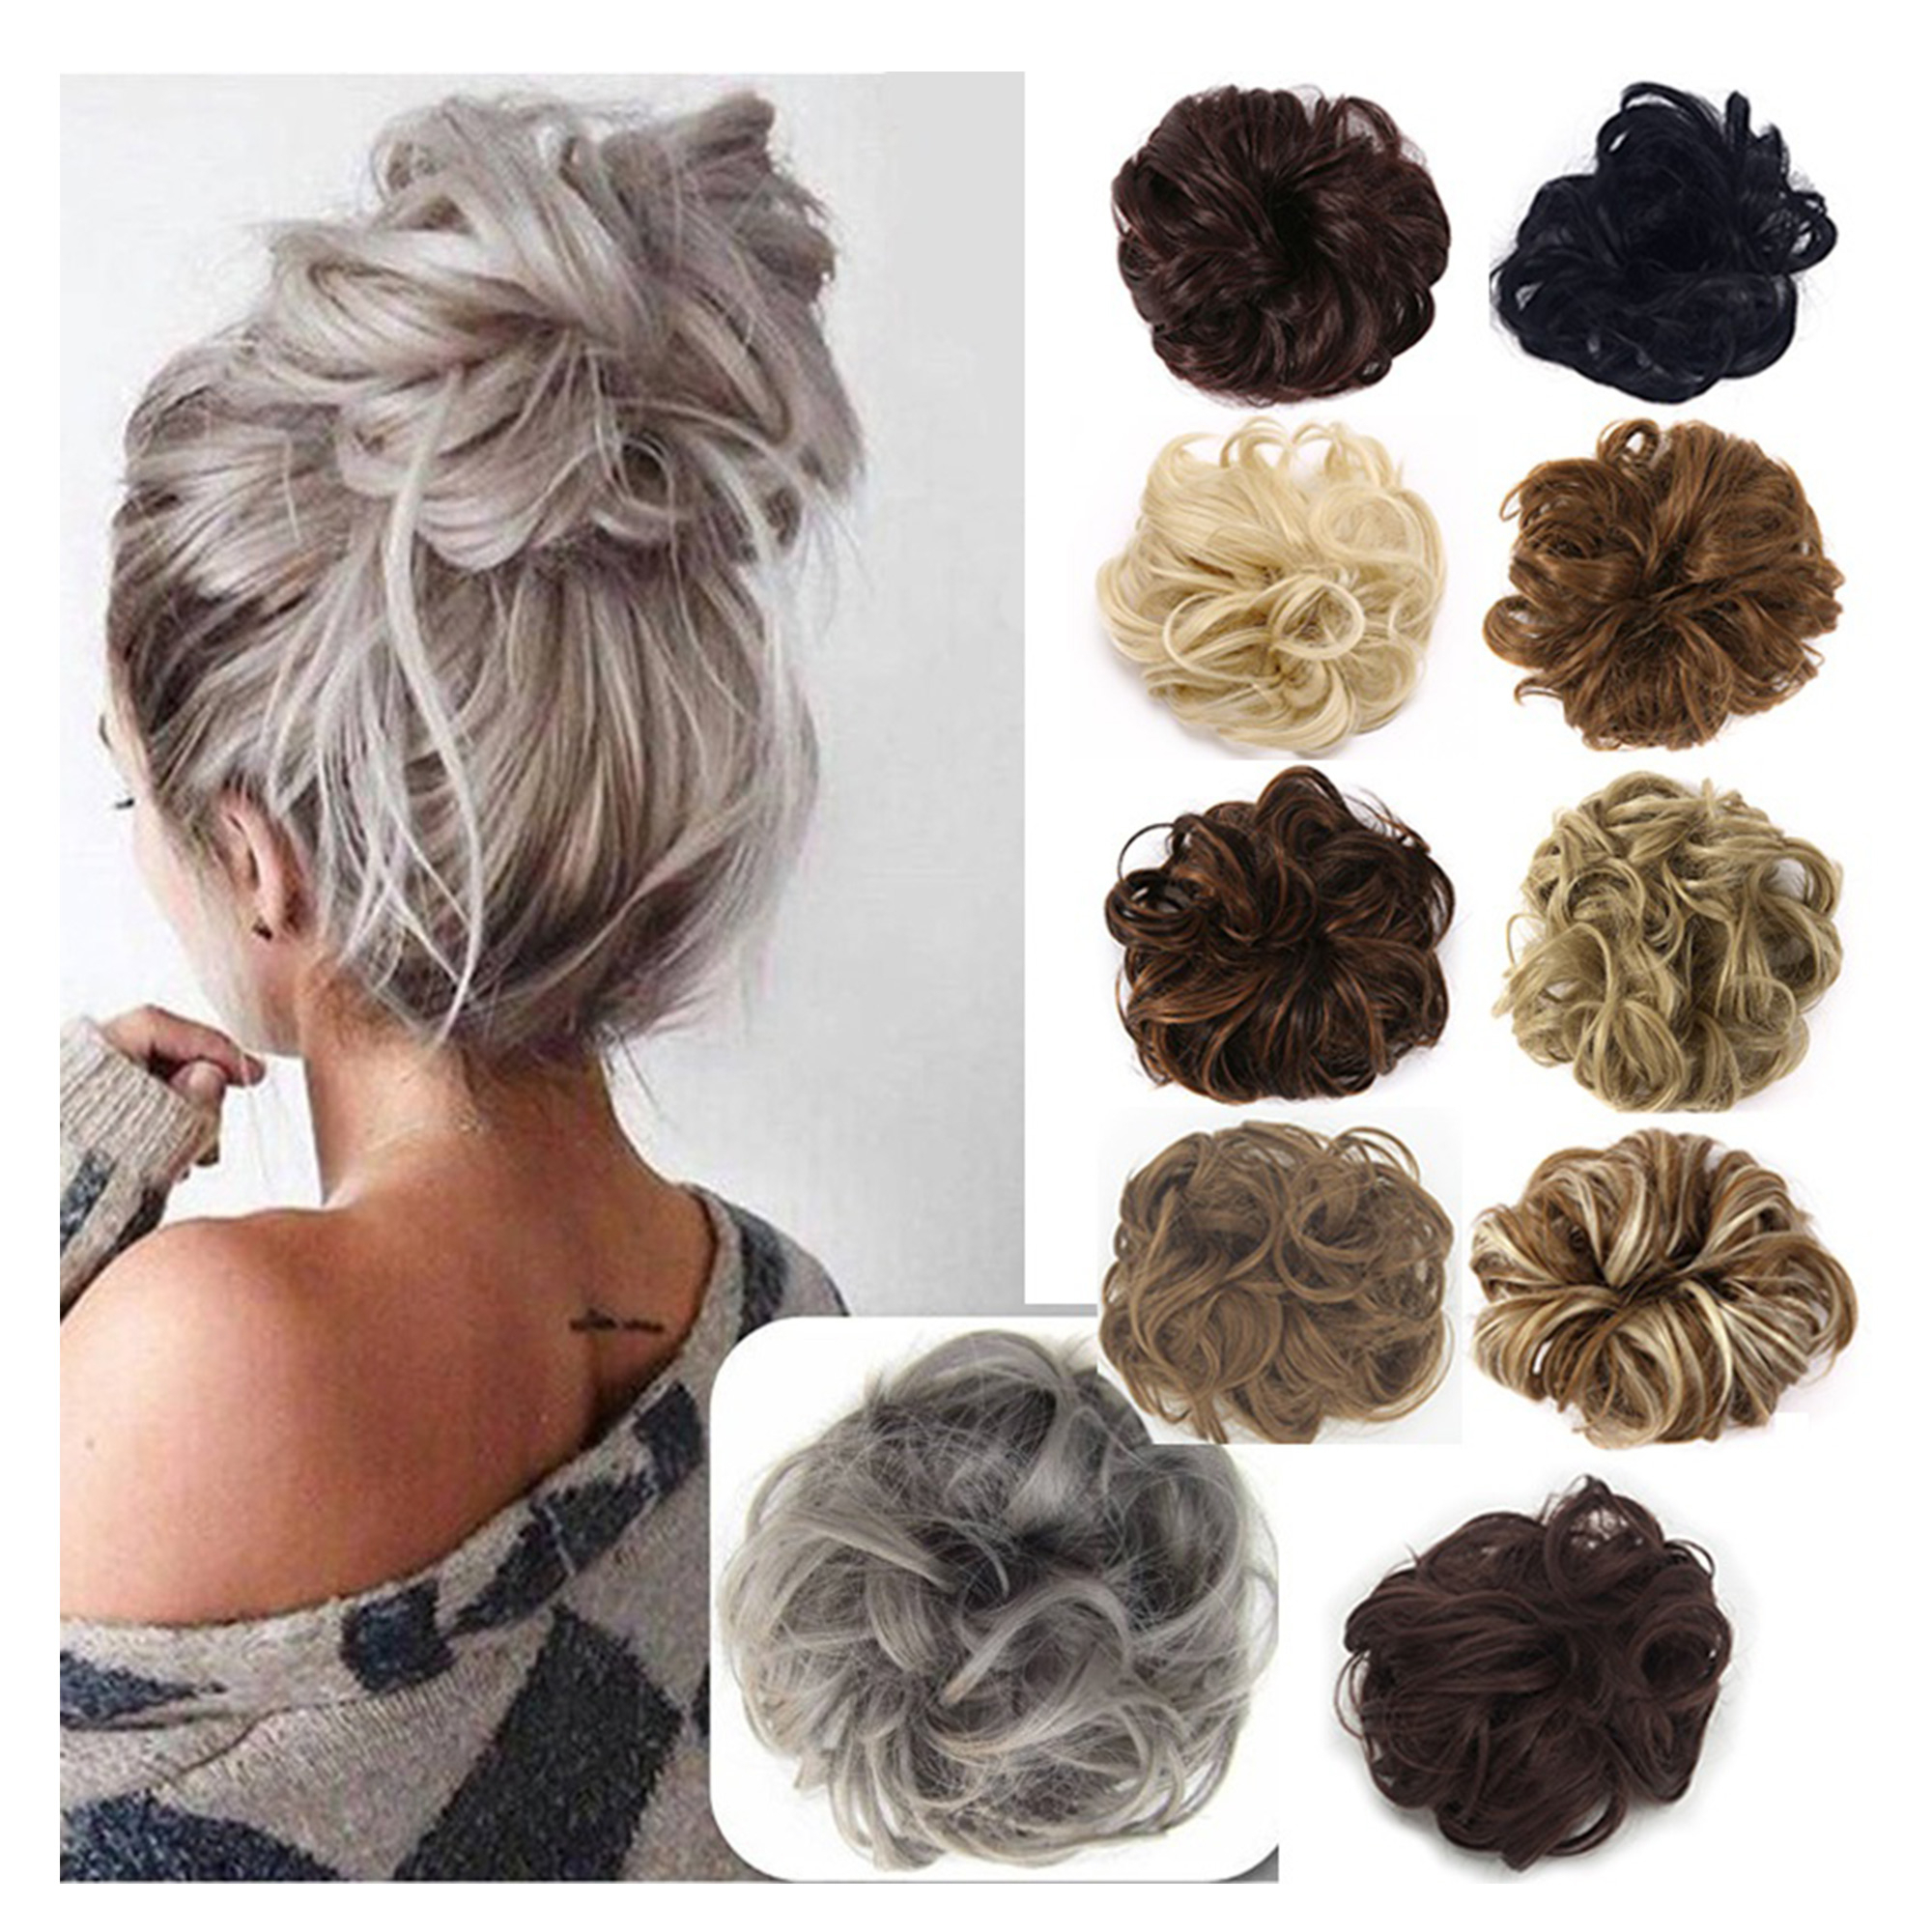 Florata Messy Hair Bun Extensions Hair Piece Curly Hair Scrunchies Elegant Chignon Hair Donut Scrunchy Updo Pony Tail With Regard To Most Recently Released Messy Updo Hairstyles With Free Curly Ends (View 12 of 20)